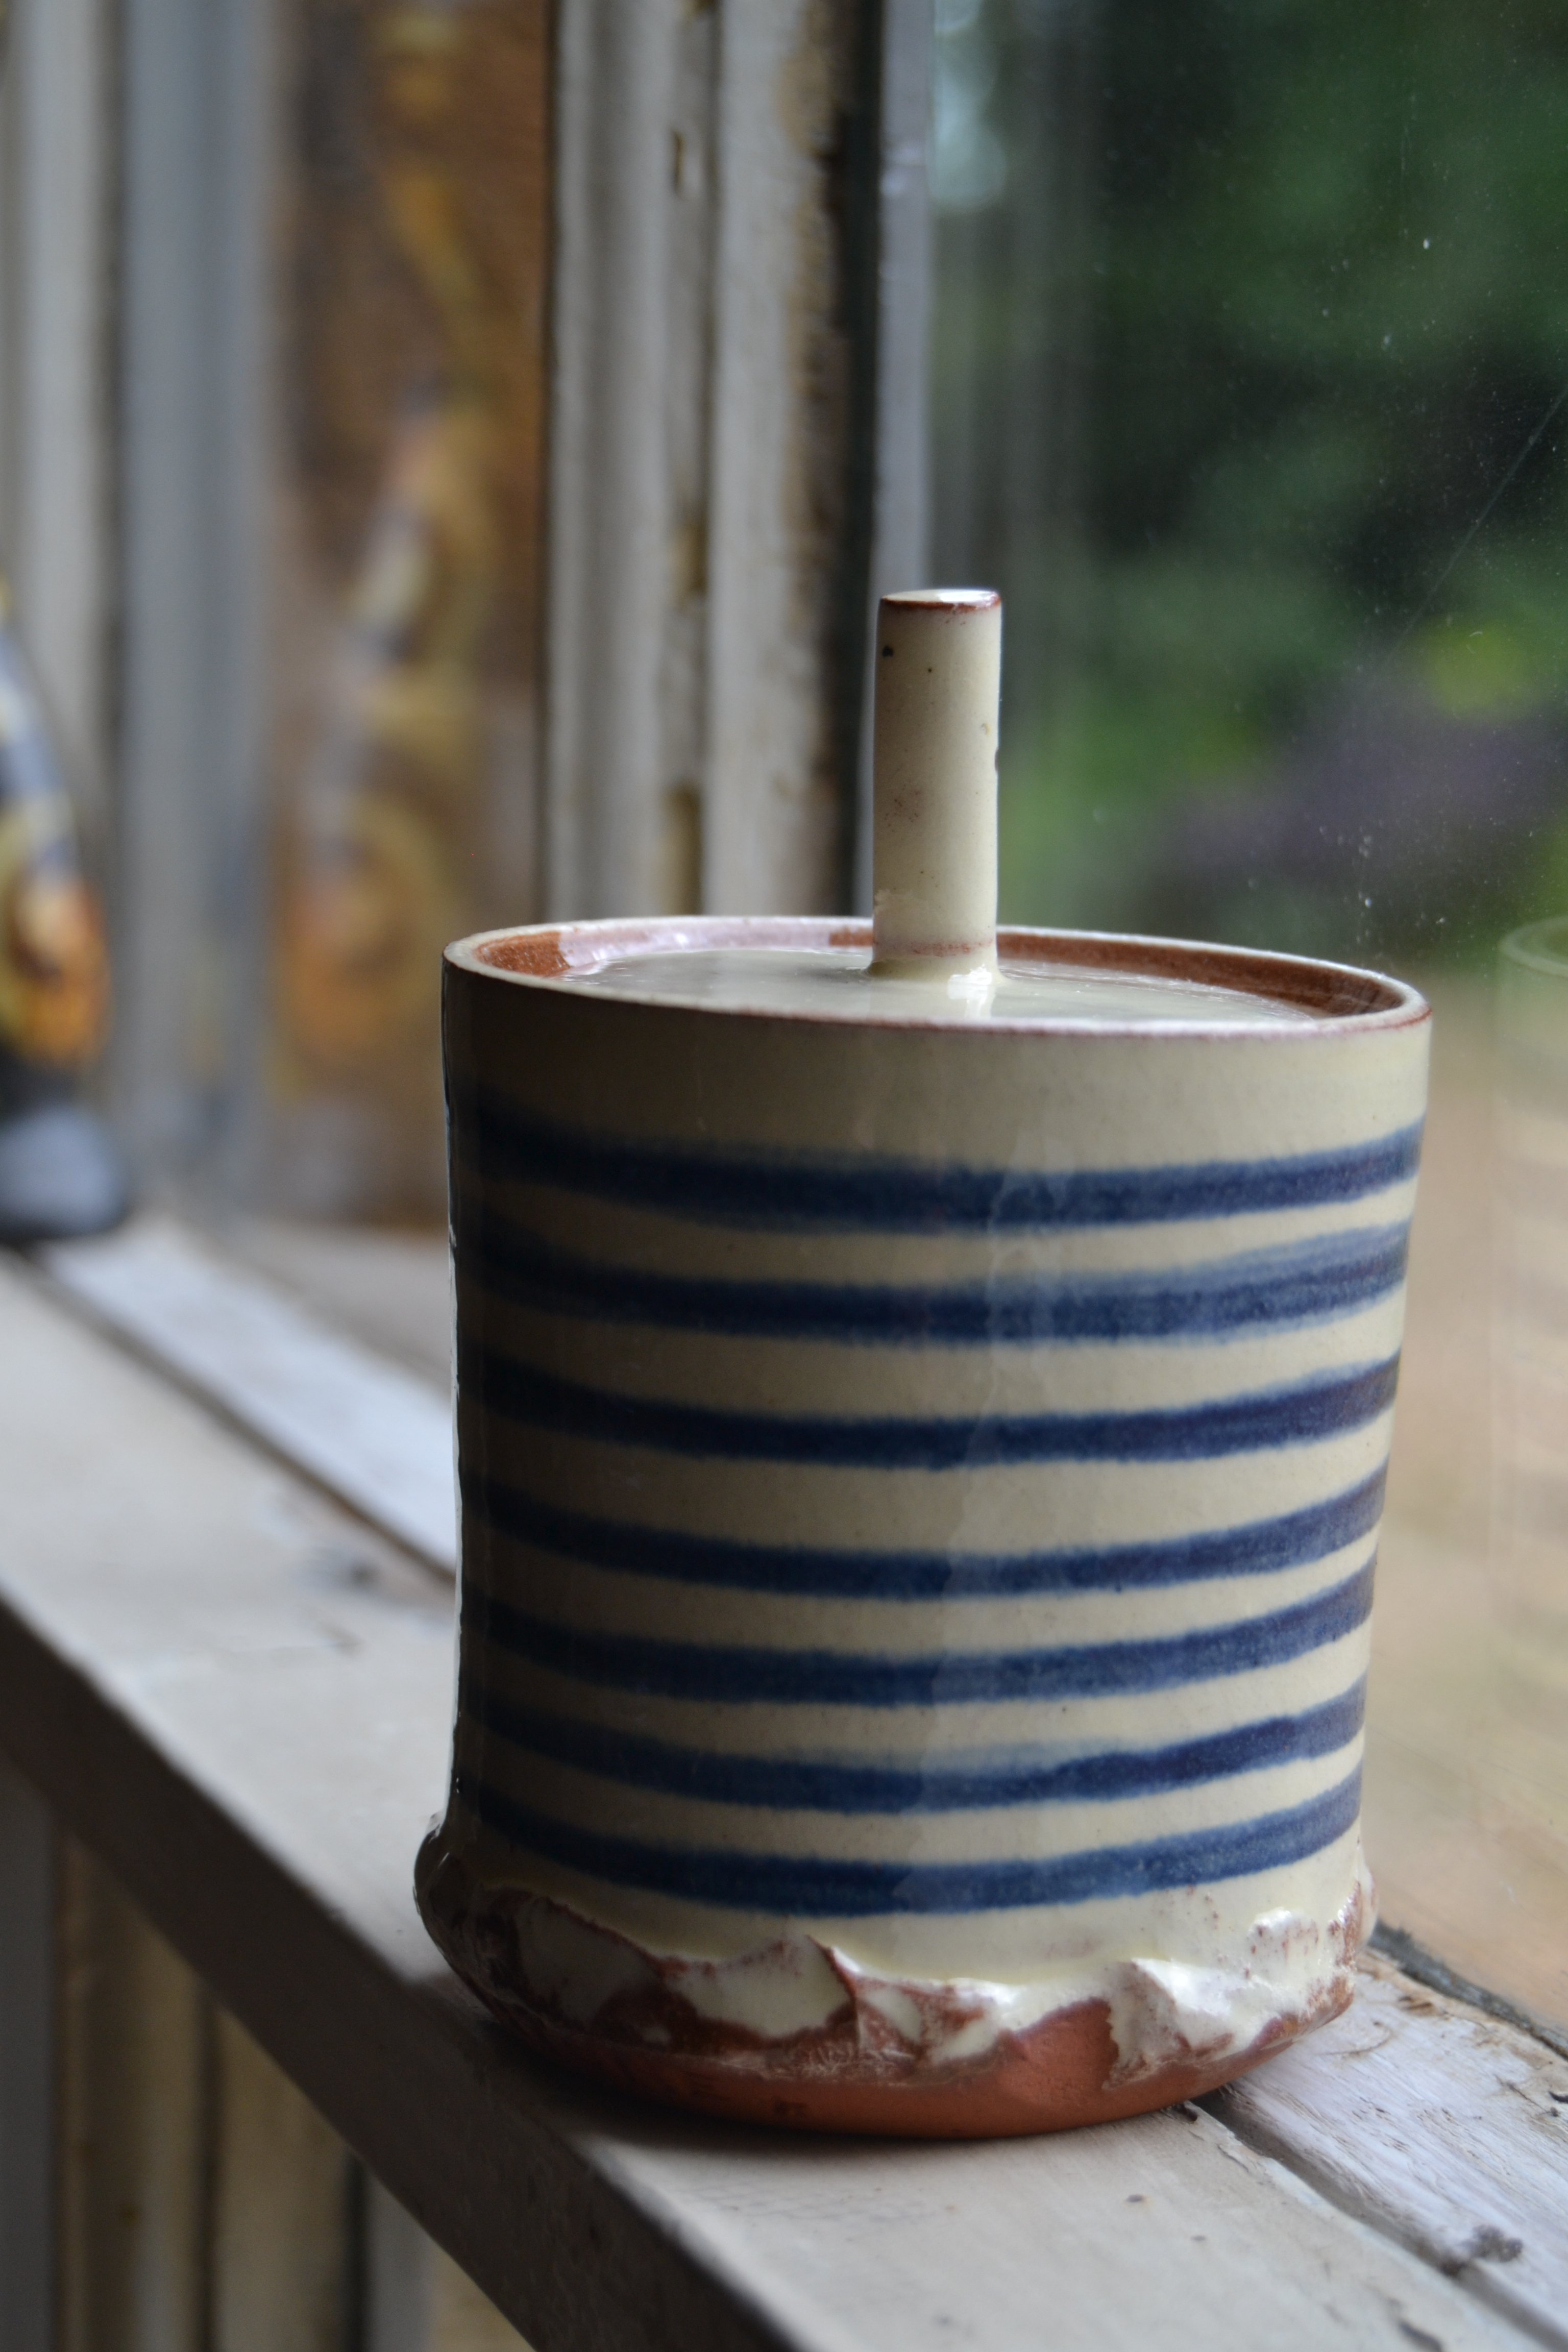 lidded pot on window